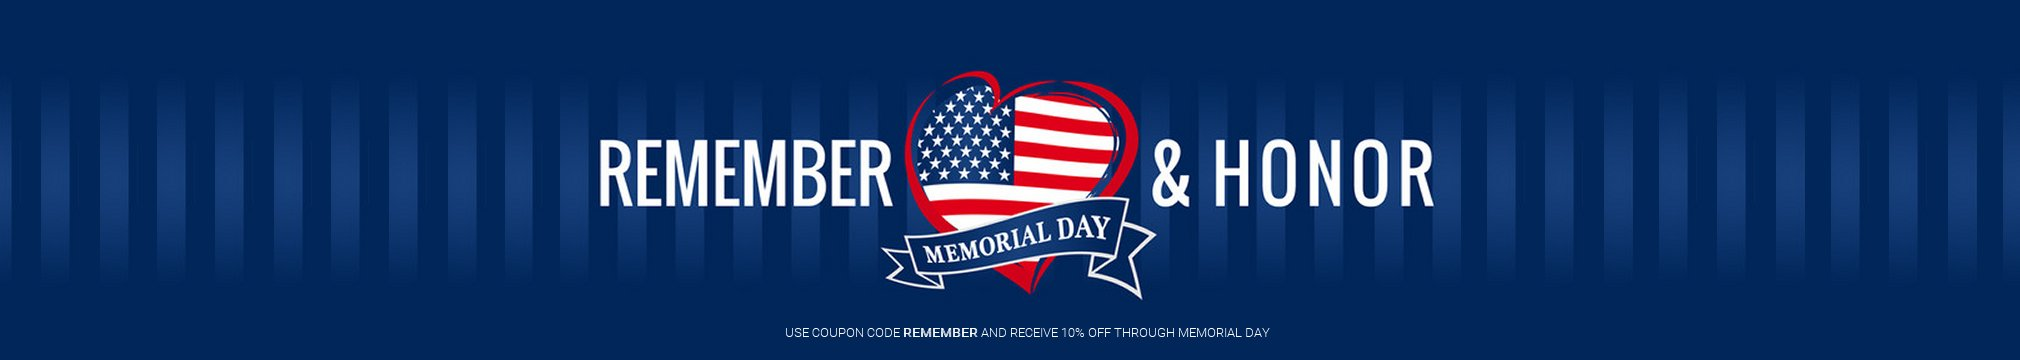 Remember and honor those who gave the ultimate sacrifice to keep us free.